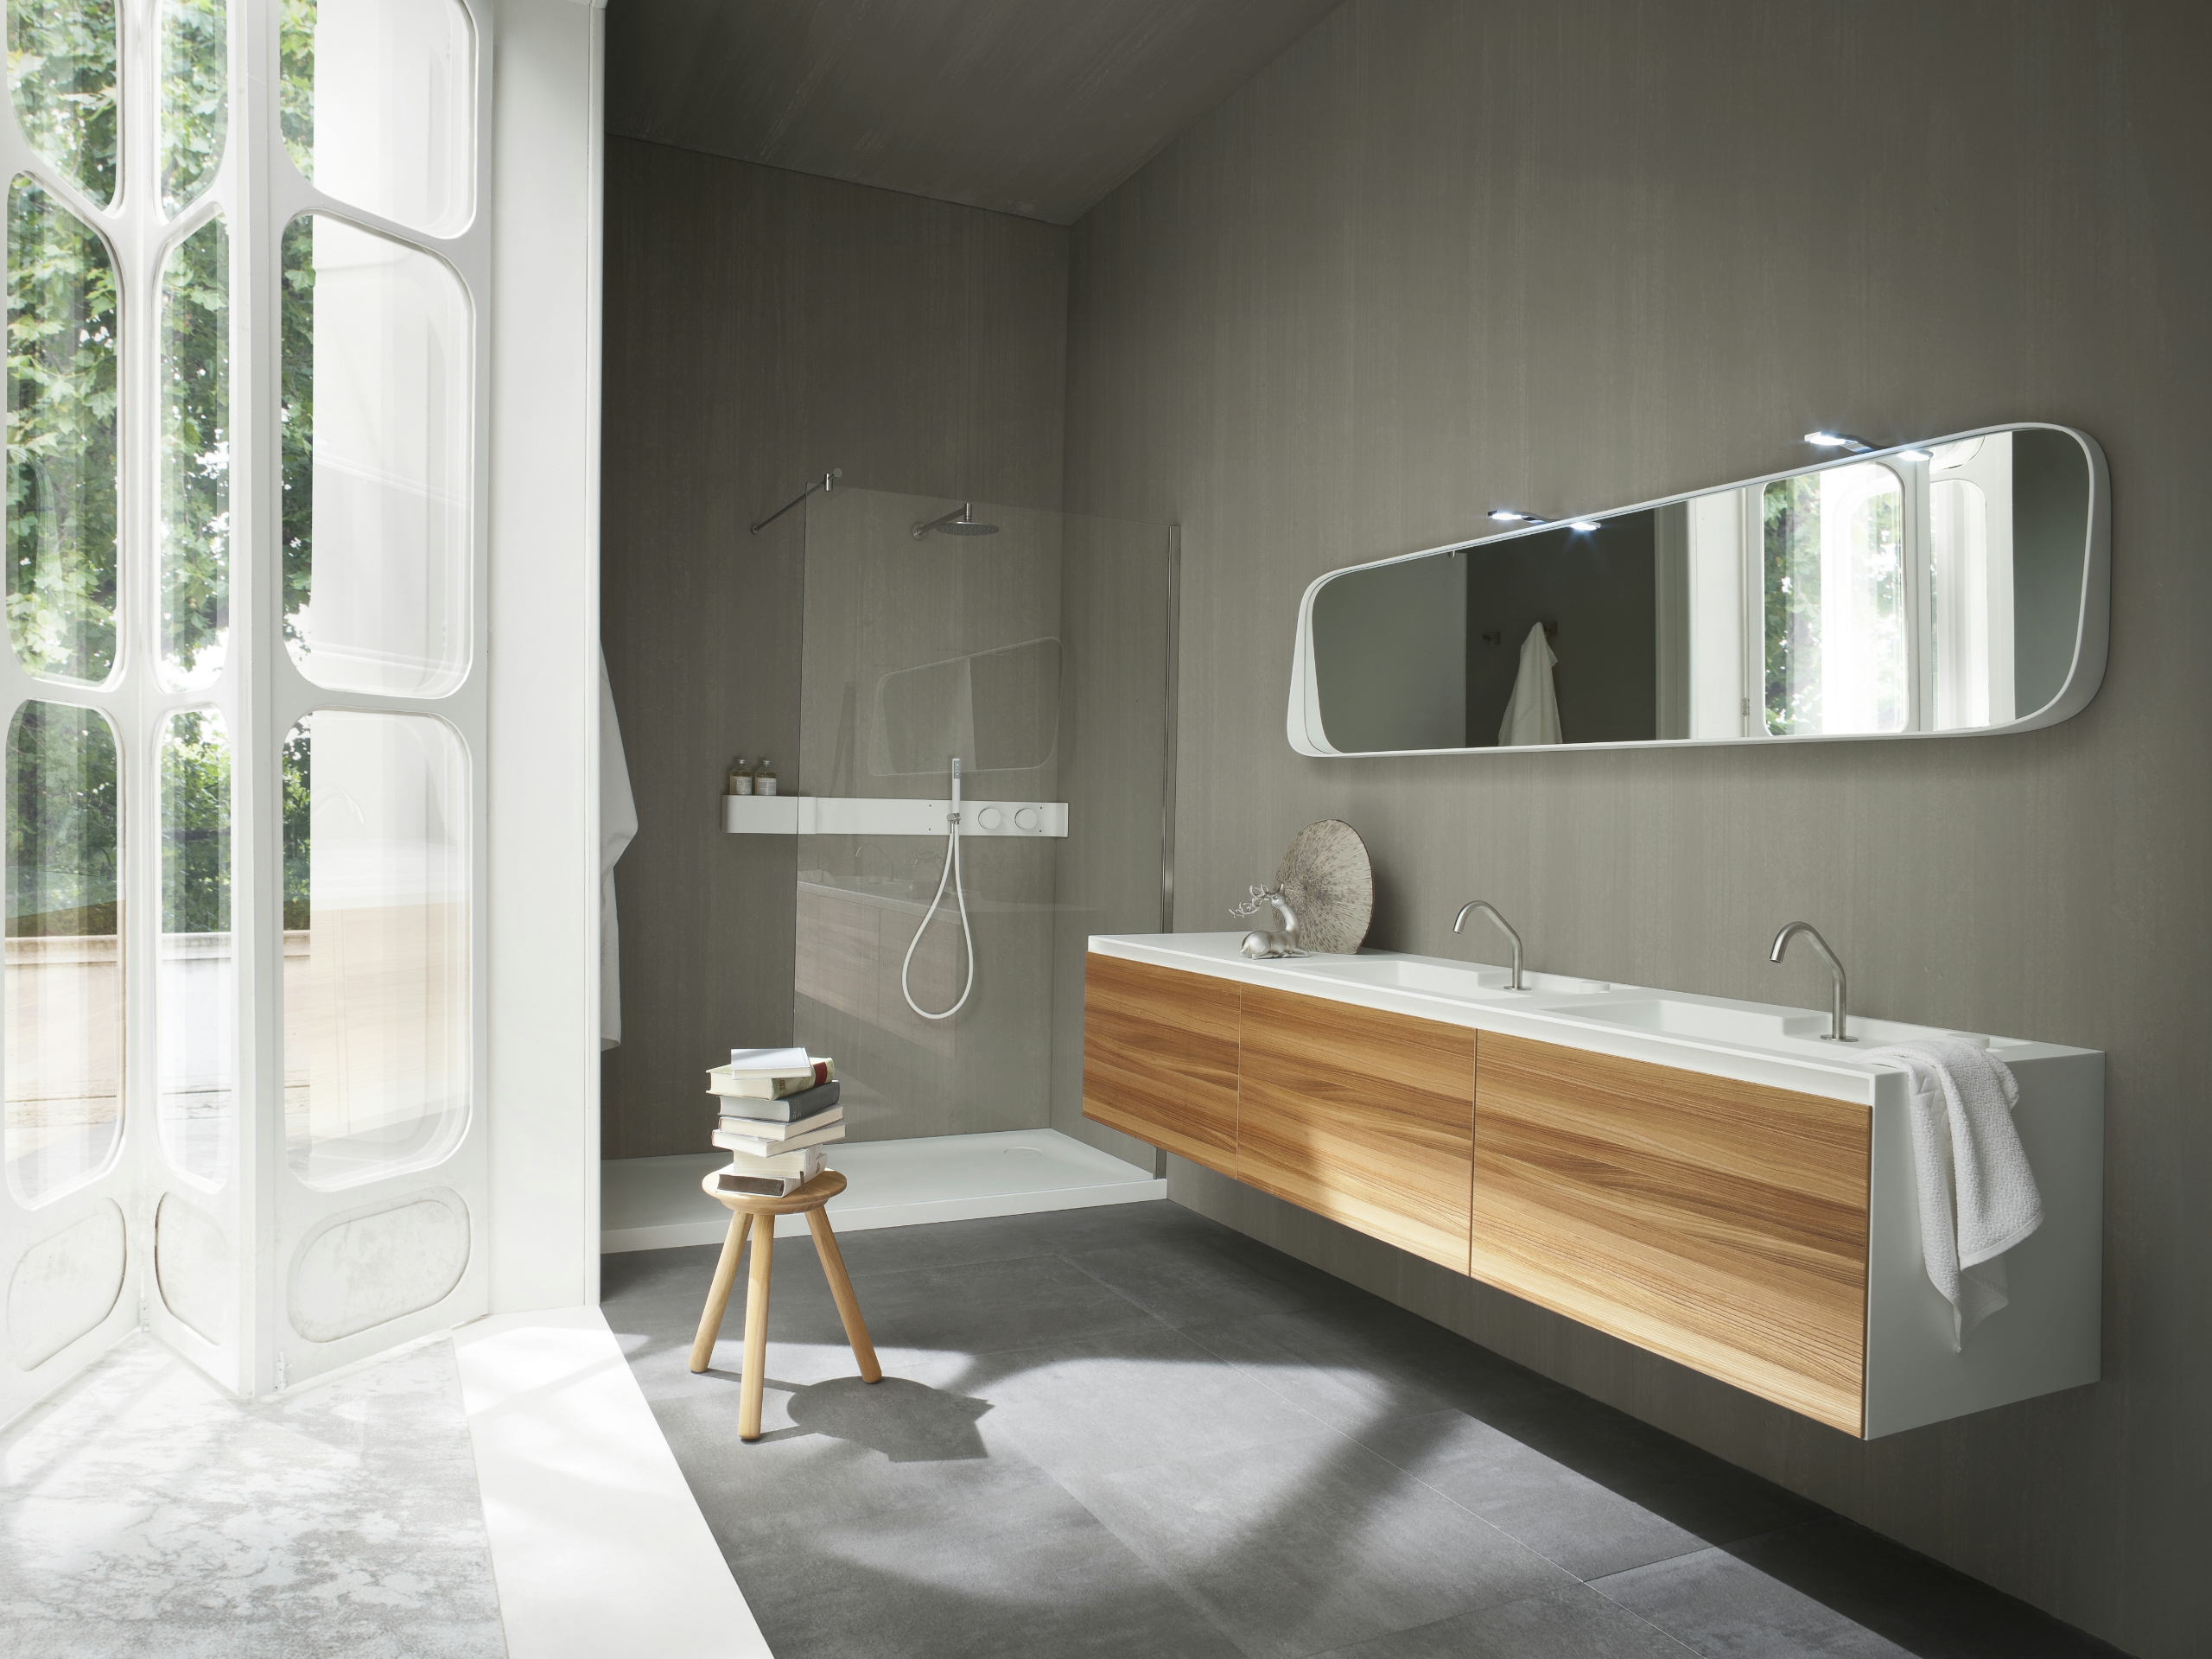 fonte miroir pour salle de bain by rexa design design monica graffeo. Black Bedroom Furniture Sets. Home Design Ideas